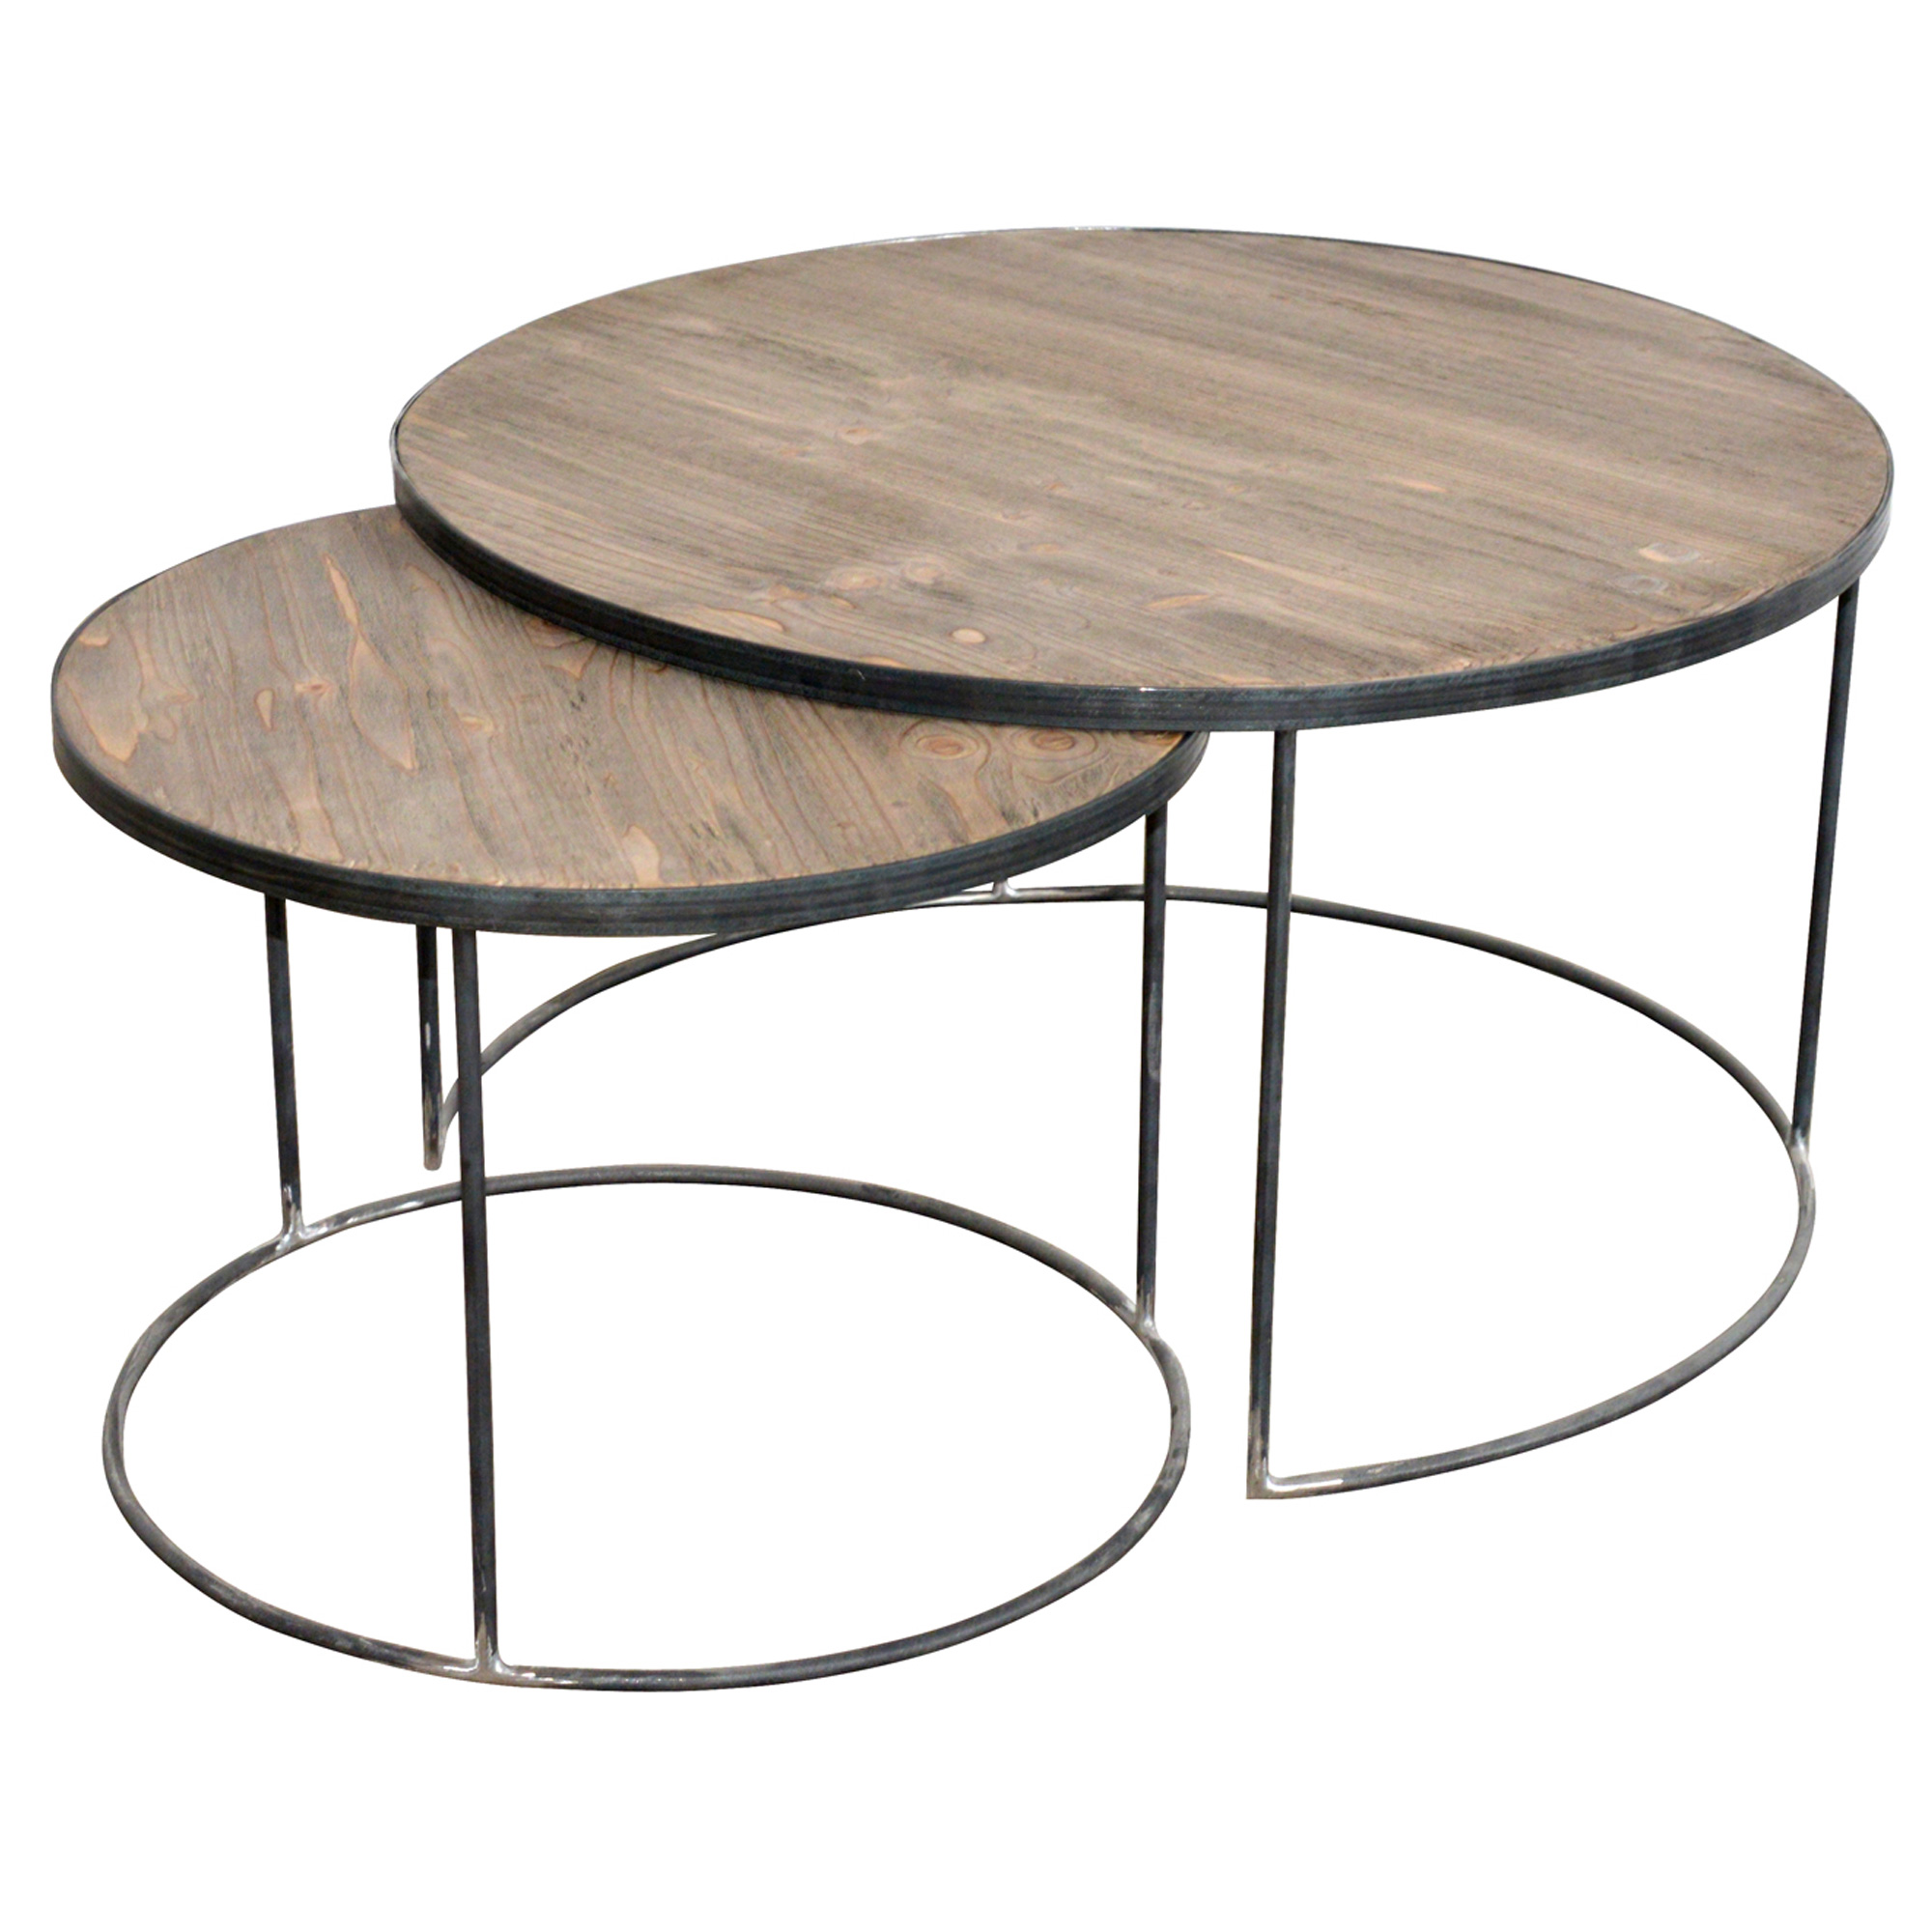 French set of two round coffee tables Round coffee tables